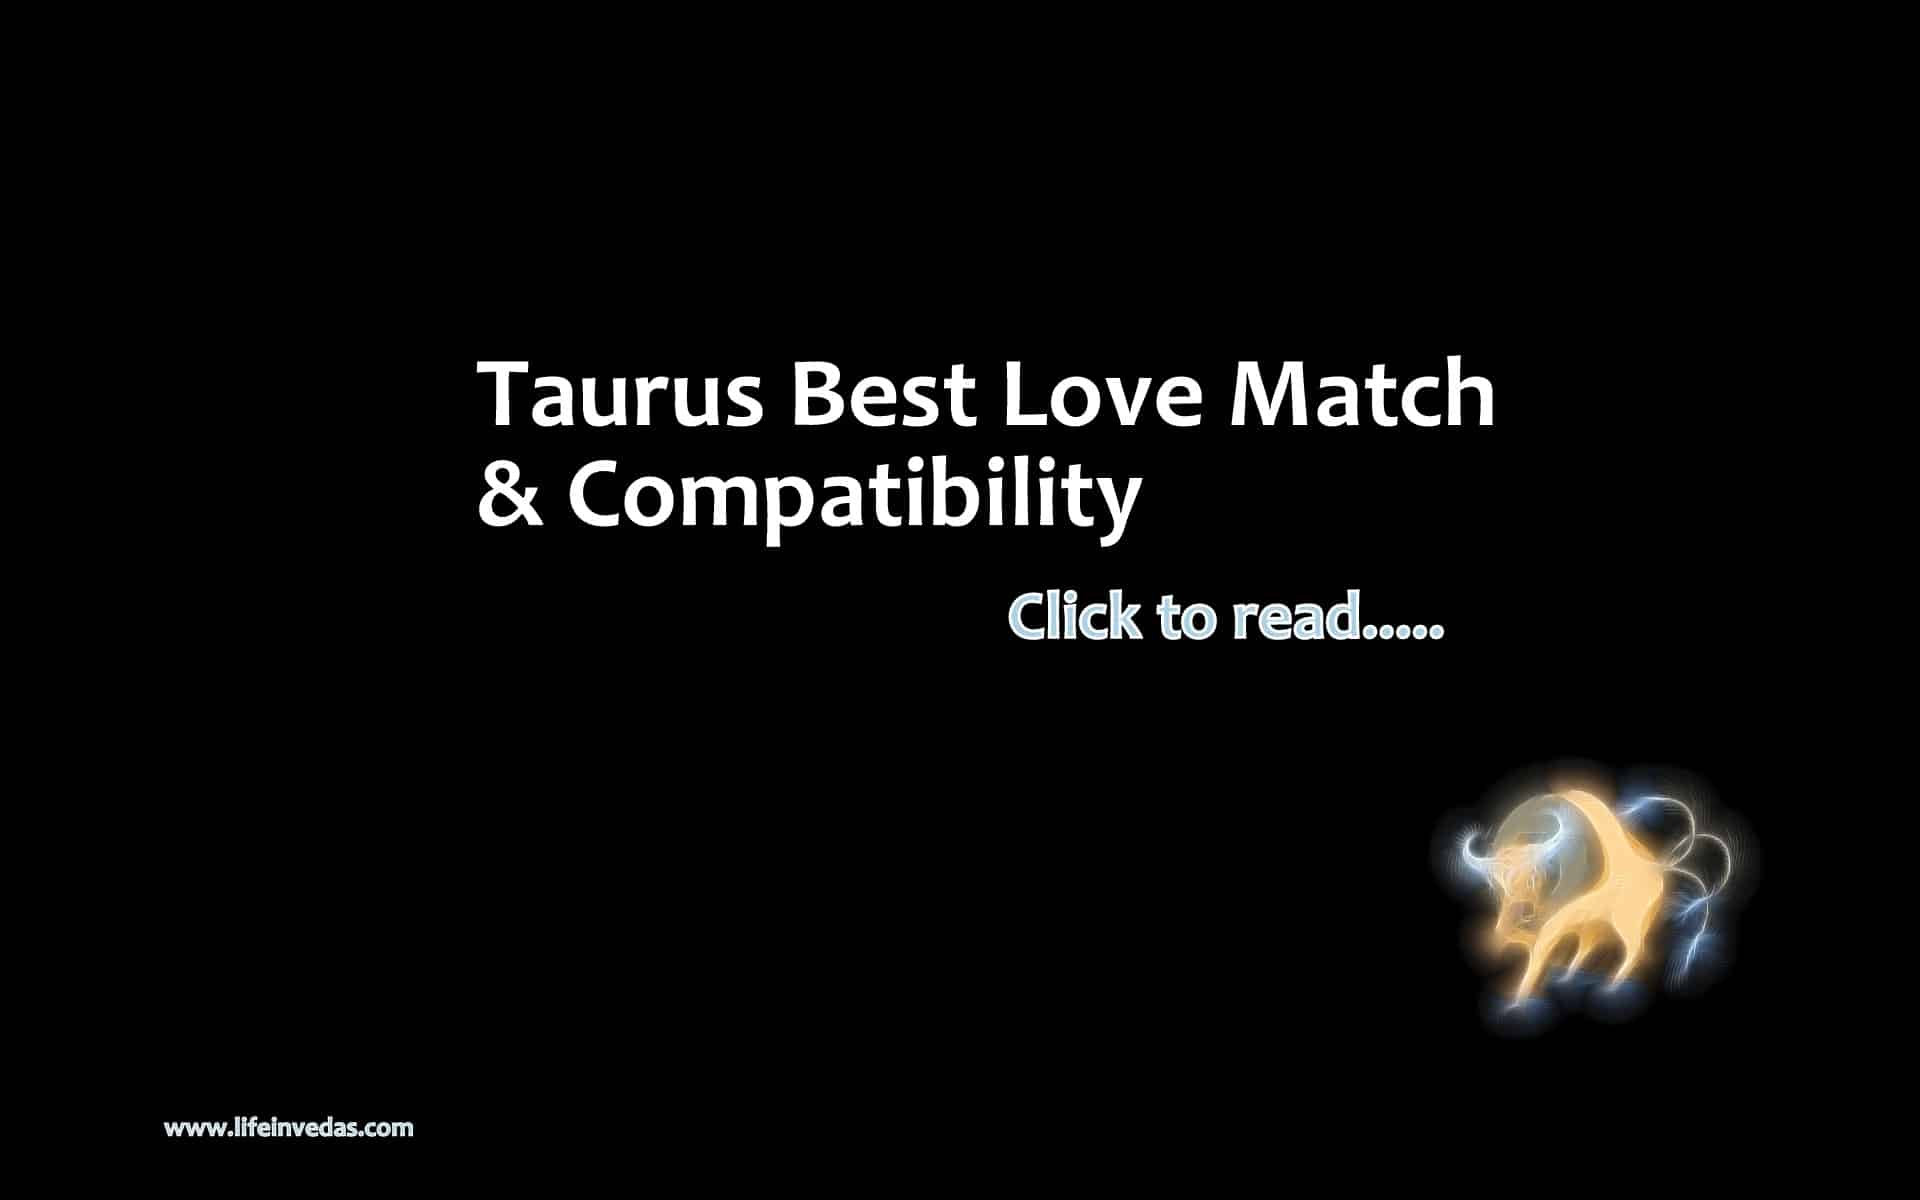 Taurus love compatibility and best love match - Life In Vedas